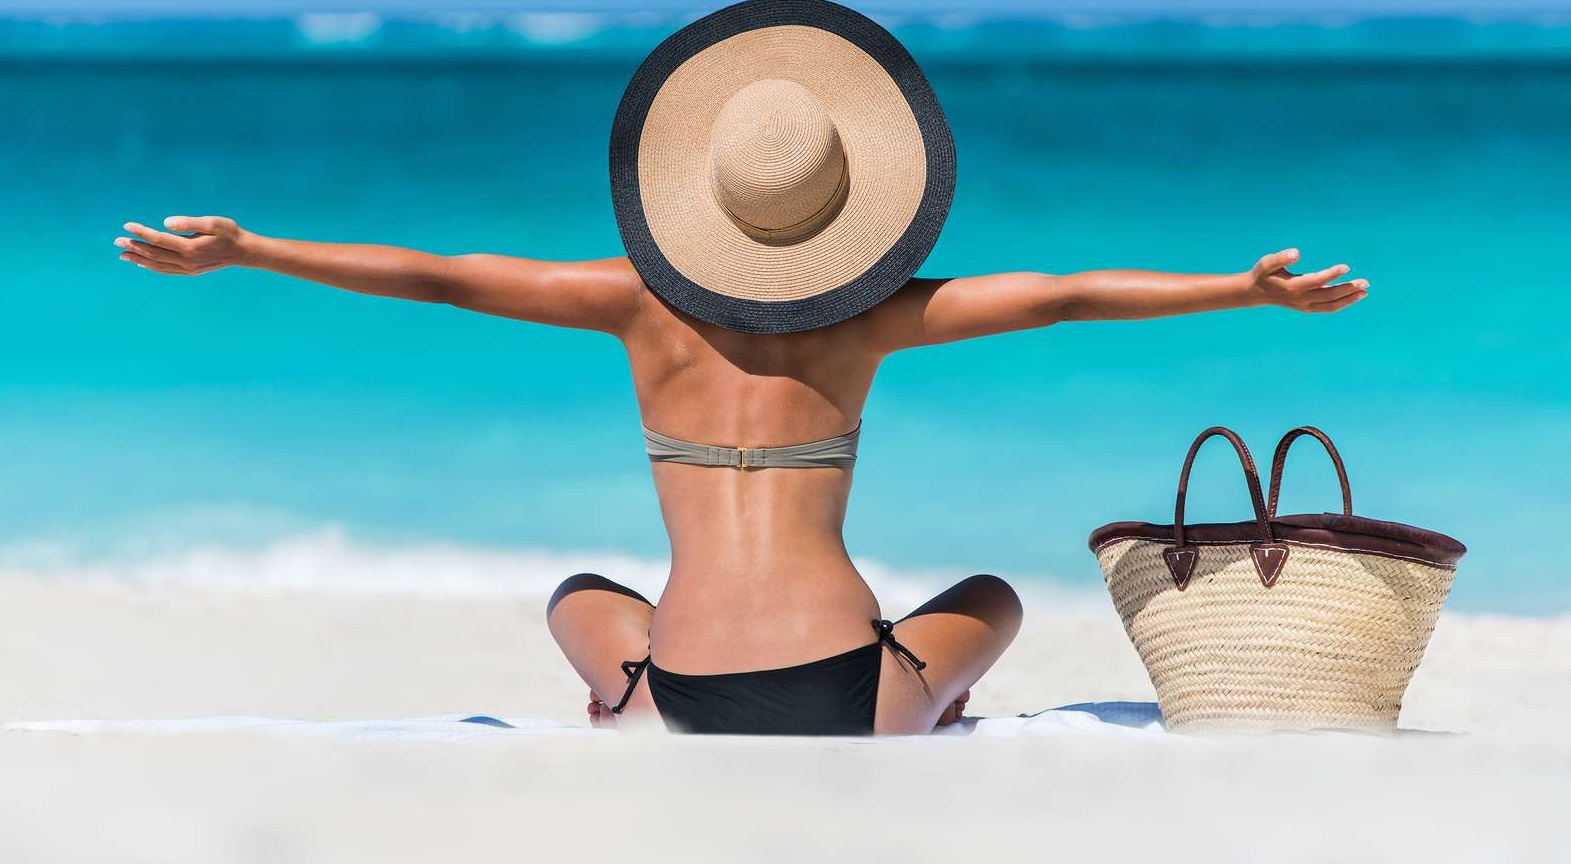 Grand Solmar Timeshare Shares Great Ways to Maximize Your Vacation Experience